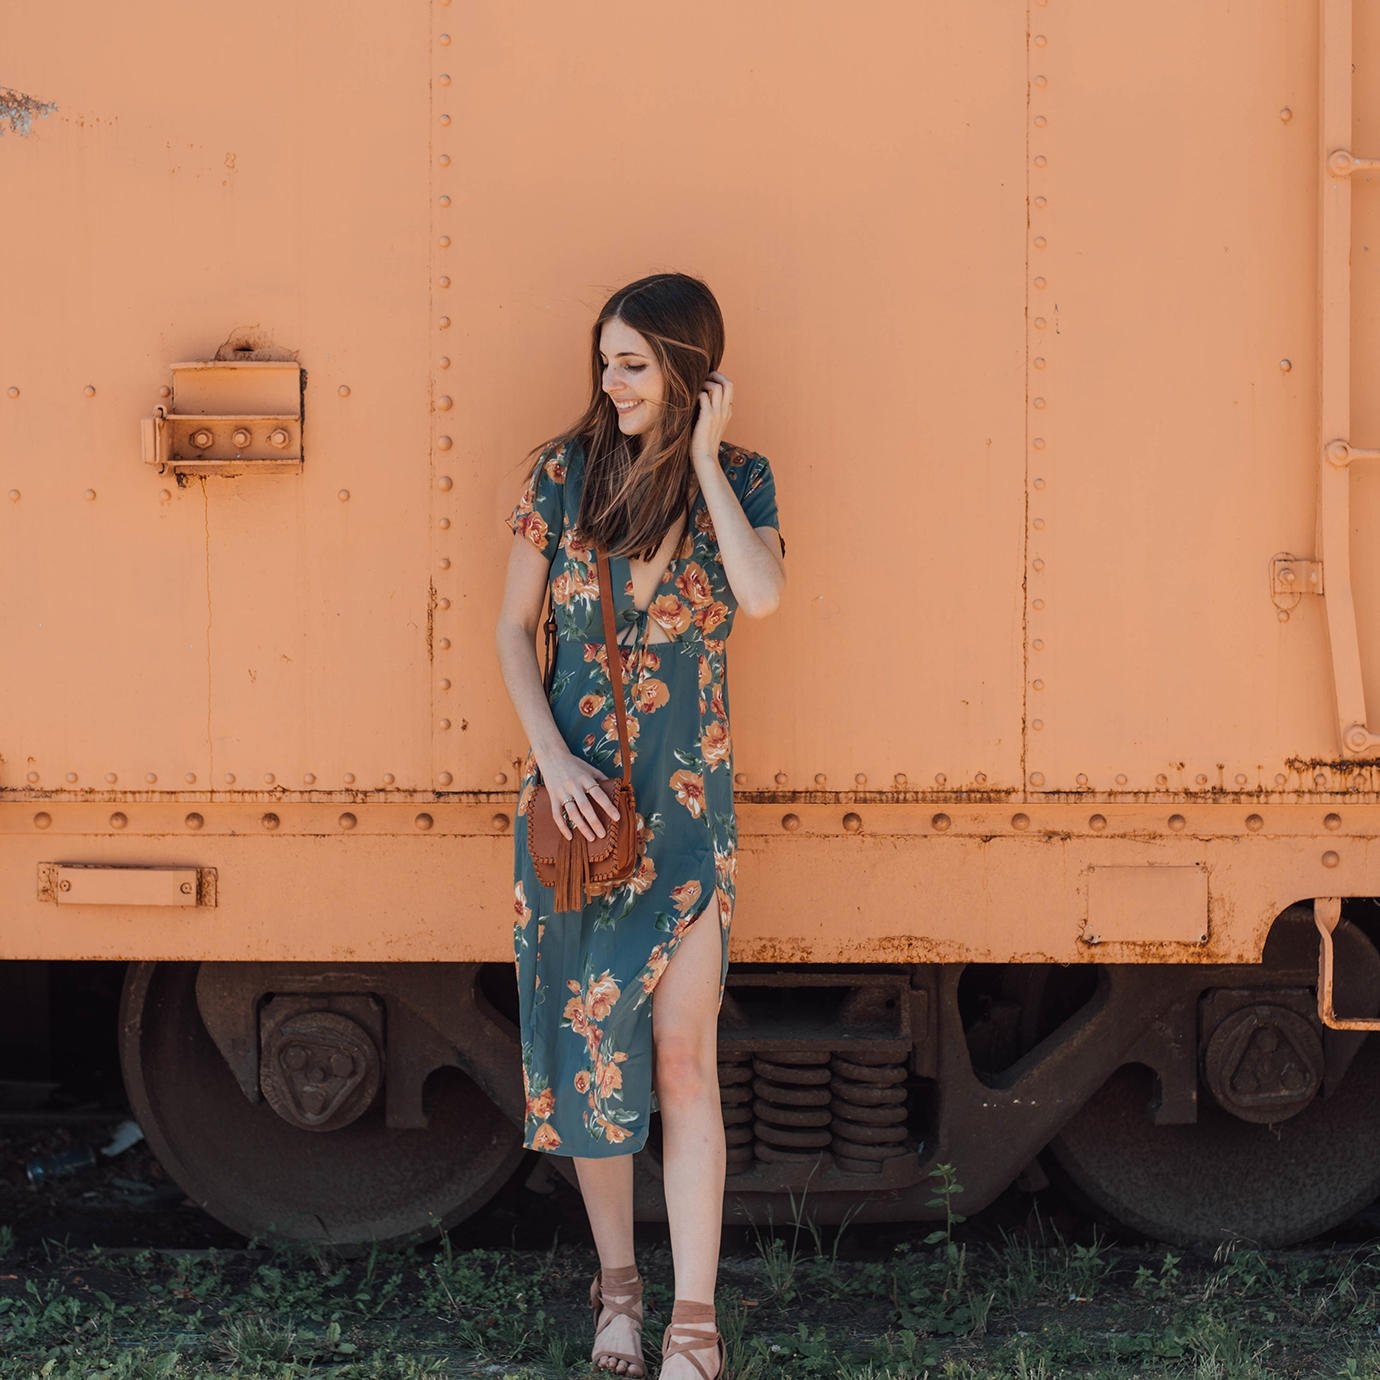 Summertime is for farmers markets and floral dresses.